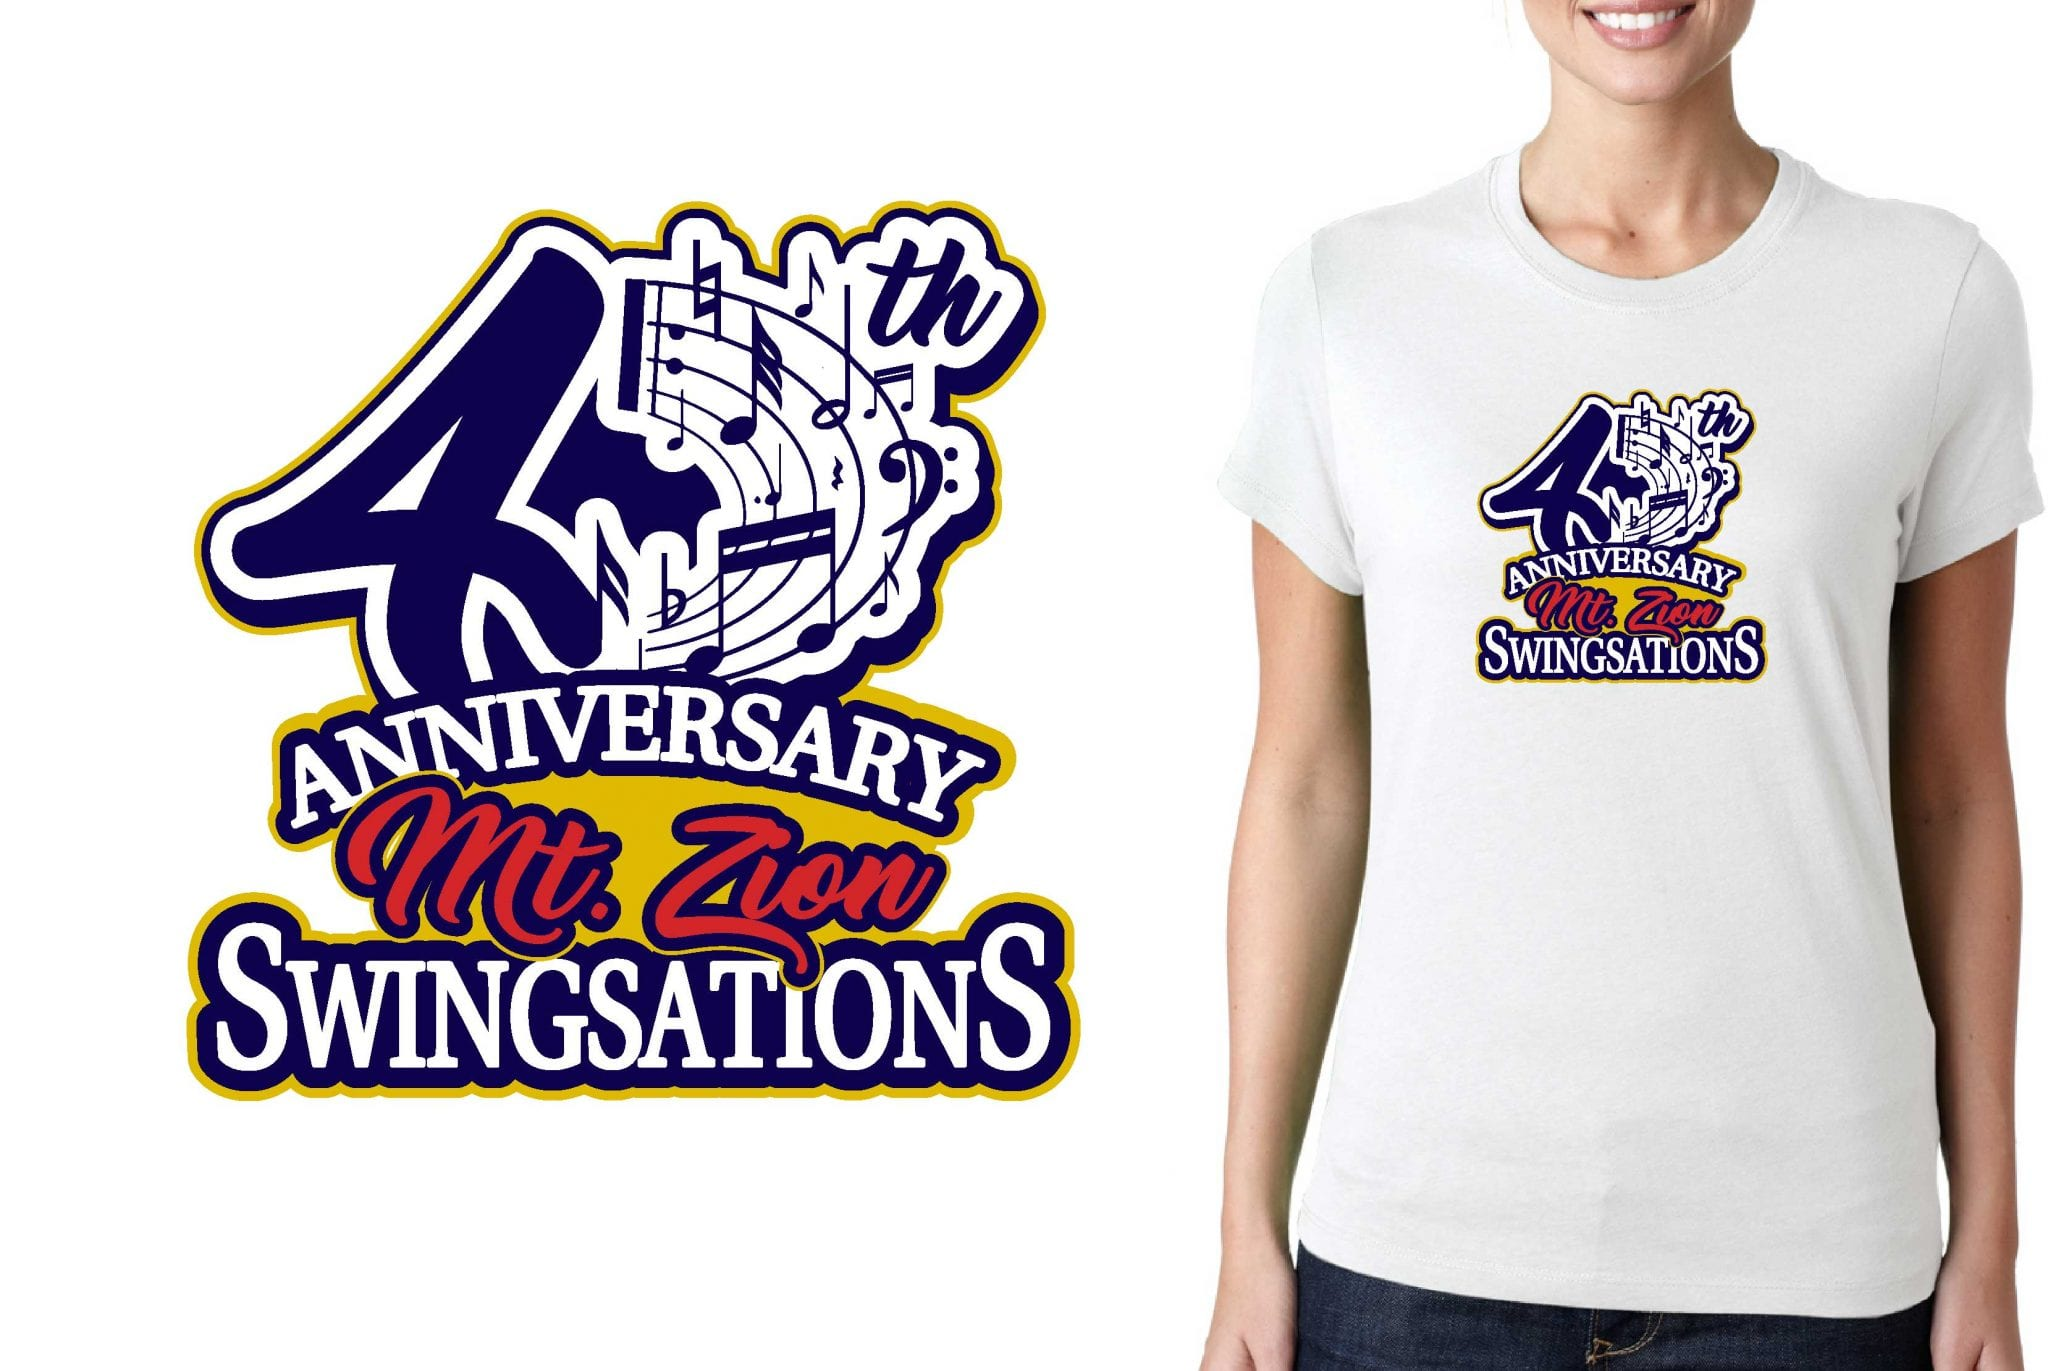 2017 CUSTOM ARTWORK FORM Mt Zion Swingsations vector logo design for t-shirt UrArtStudio